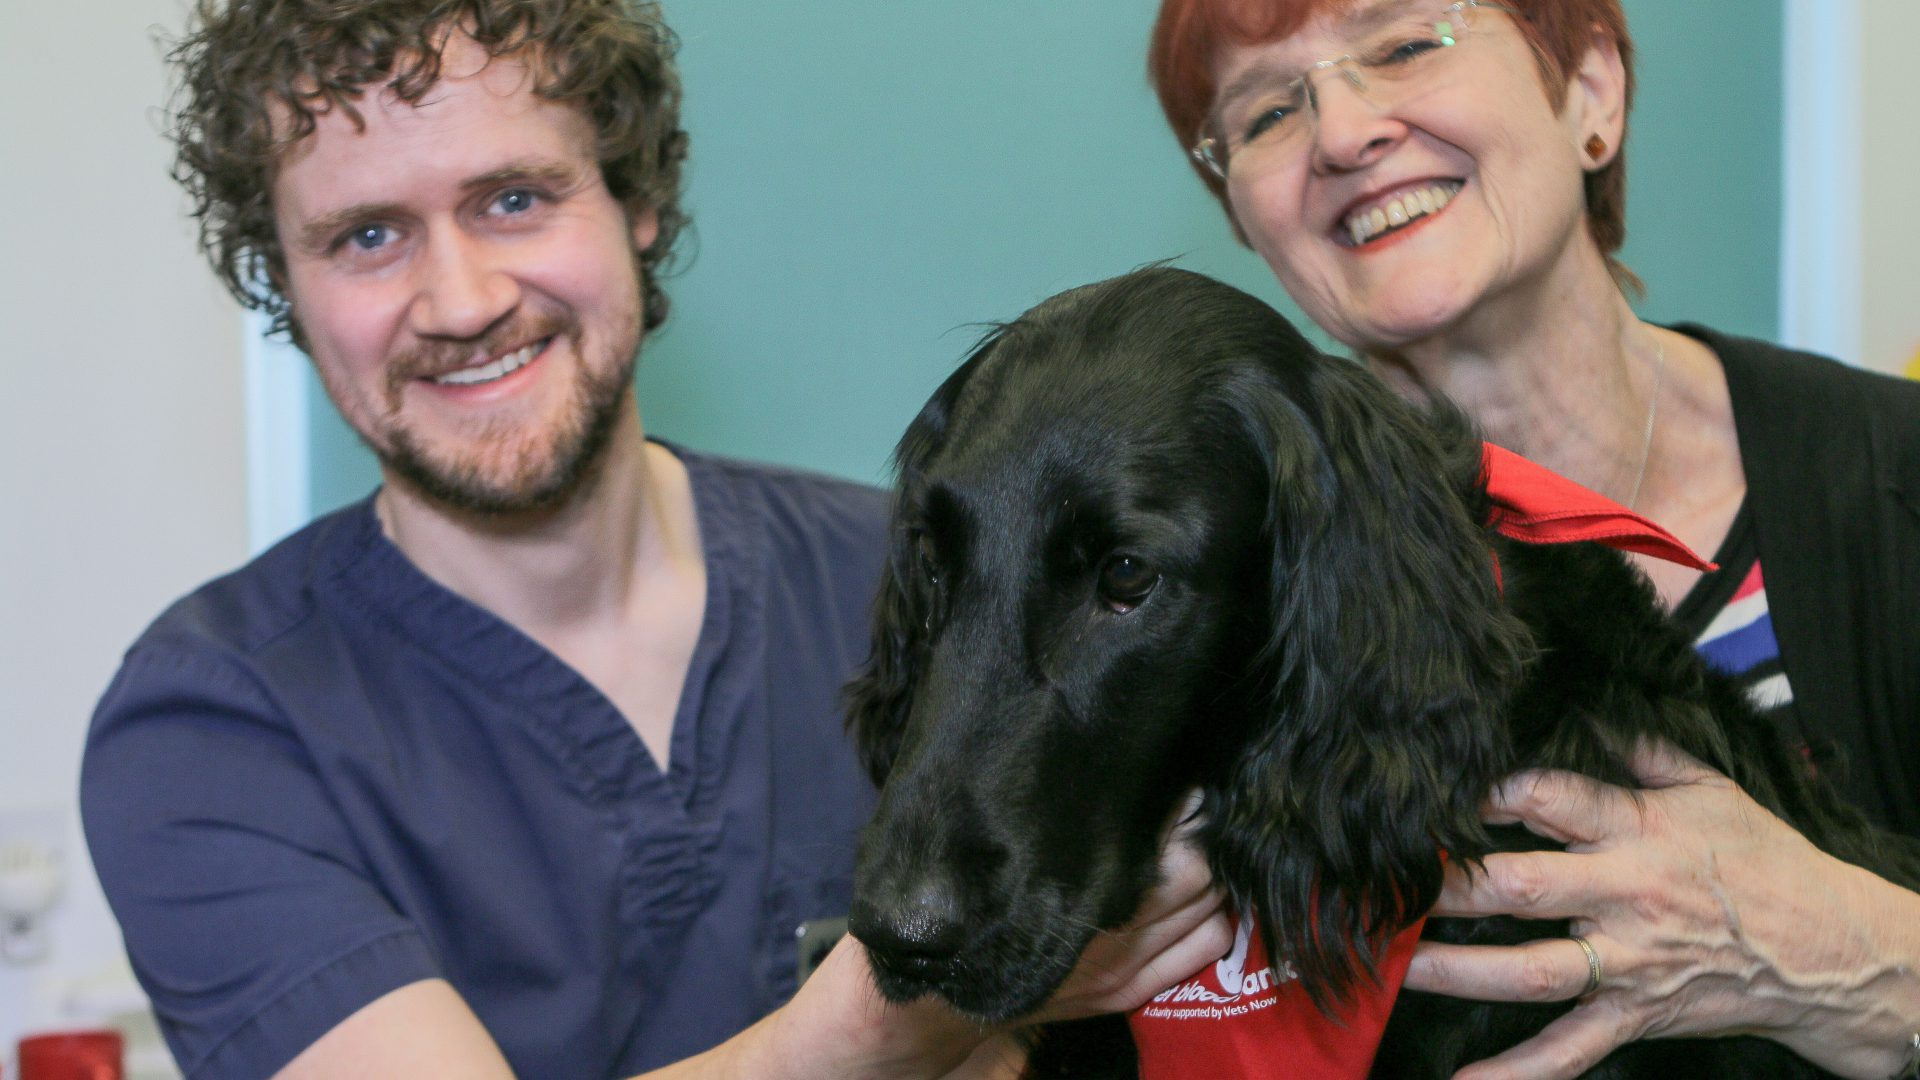 Donor Dexi leads Woodcroft Vets appeal for dogs to help save lives – by giving blood